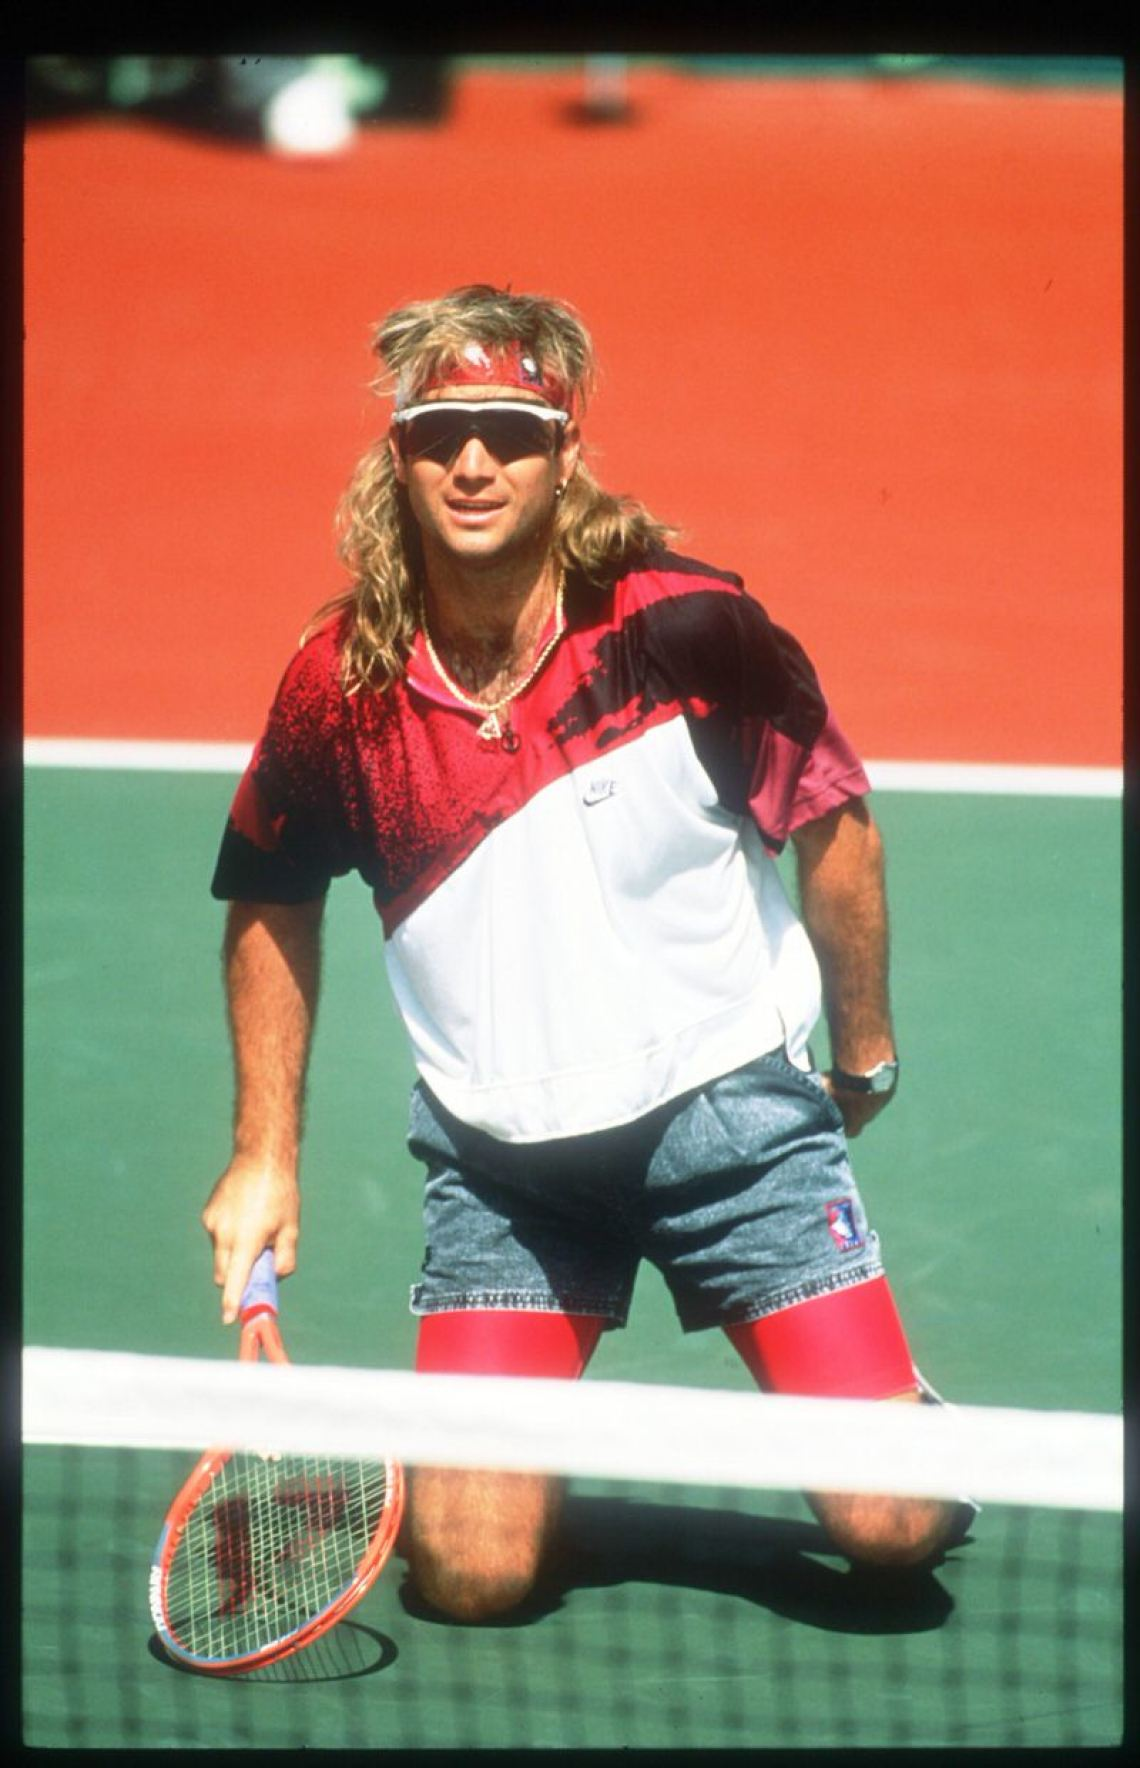 It's as if Agassi predicted the future of style. Wild patterns are back and so are Razor Blade sunglasses.